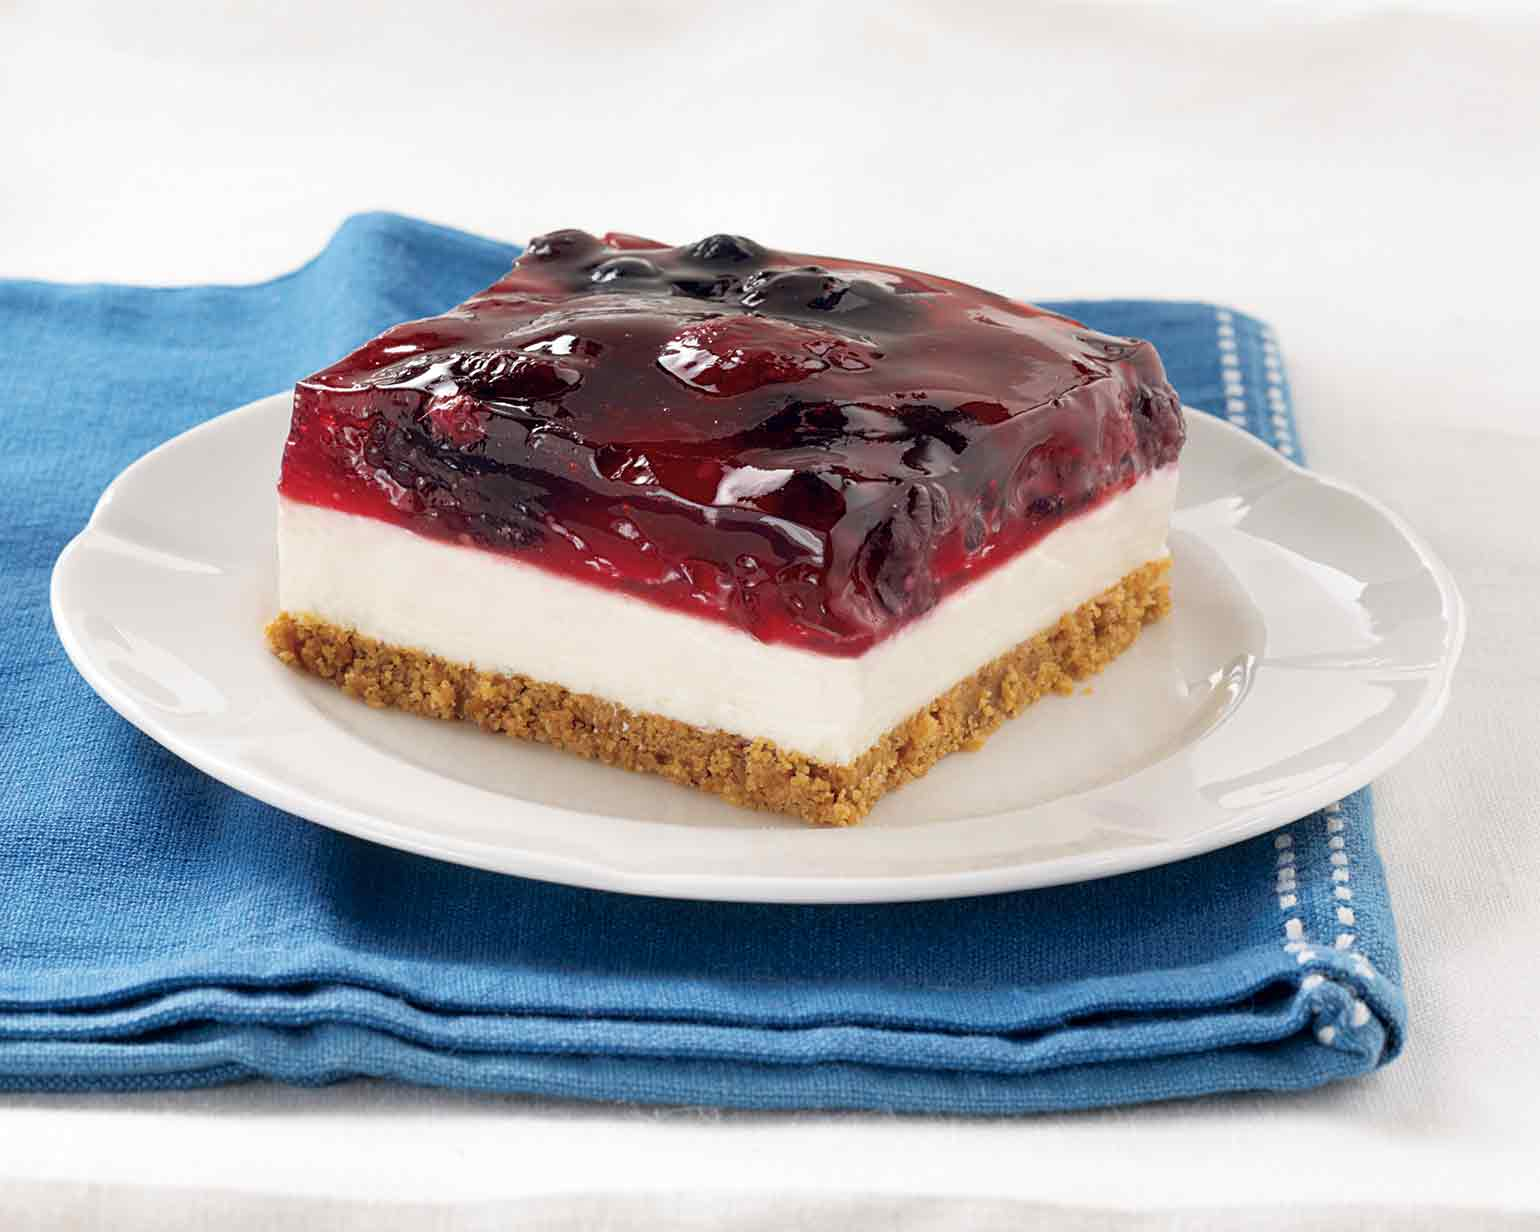 Triple berry dessert squares schwan 39 s for Triple tail fish recipes